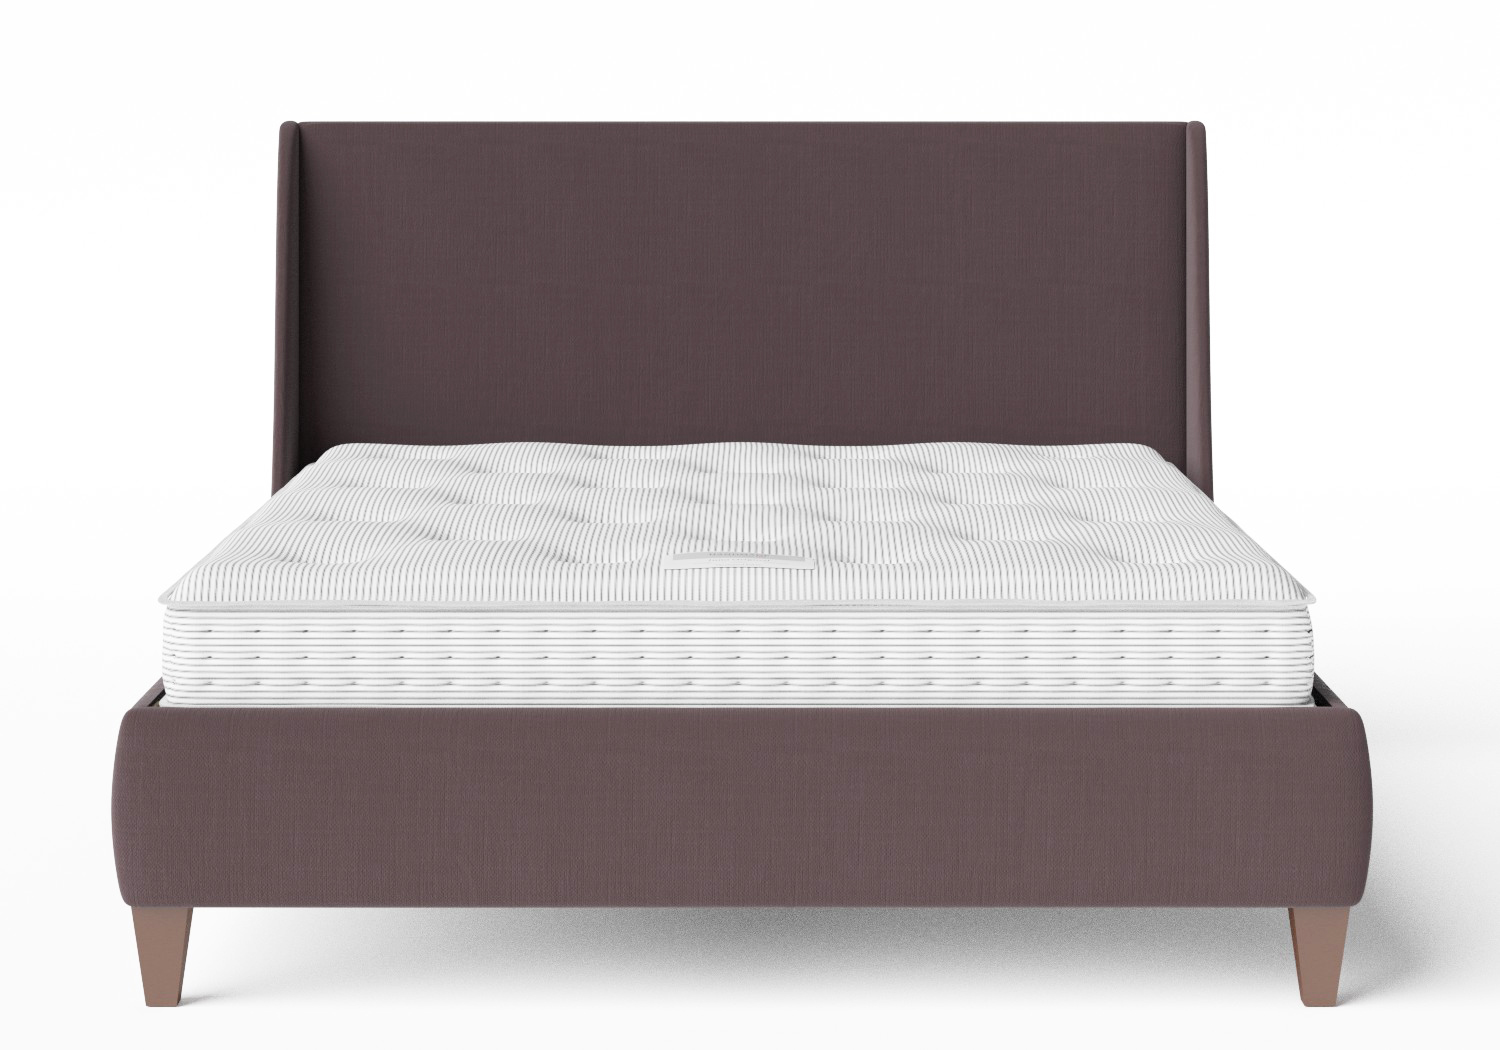 Sunderland Upholstered Bed in Aubergine fabric shown with Juno 1 mattress